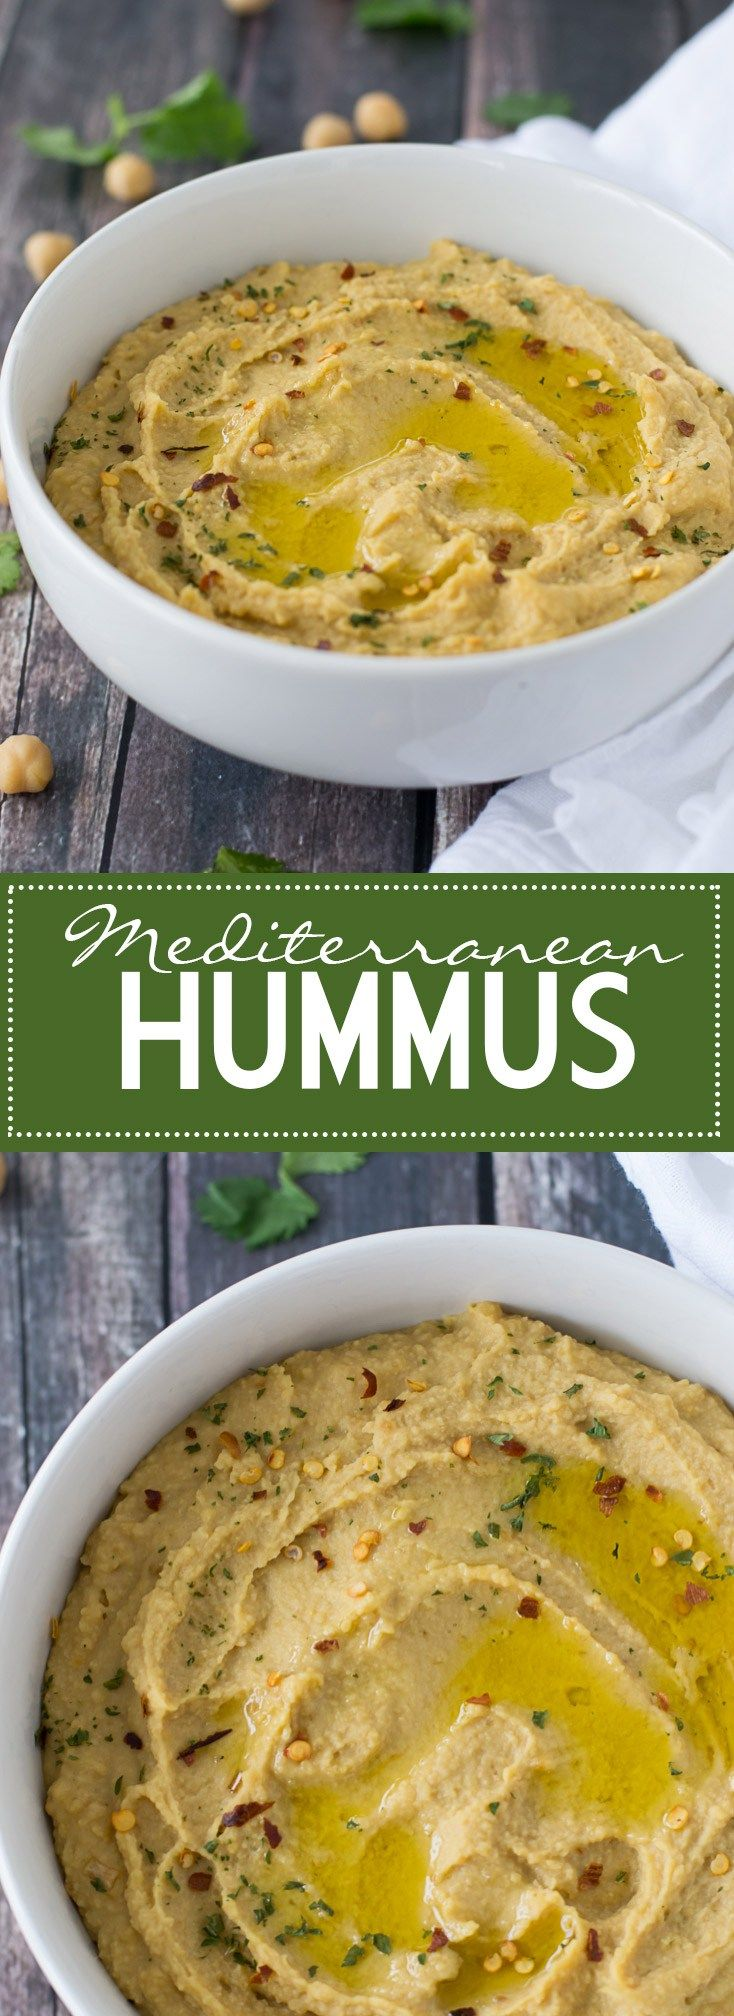 An eas and delicious recipe for Mediterranean Hummus - no tahini required!